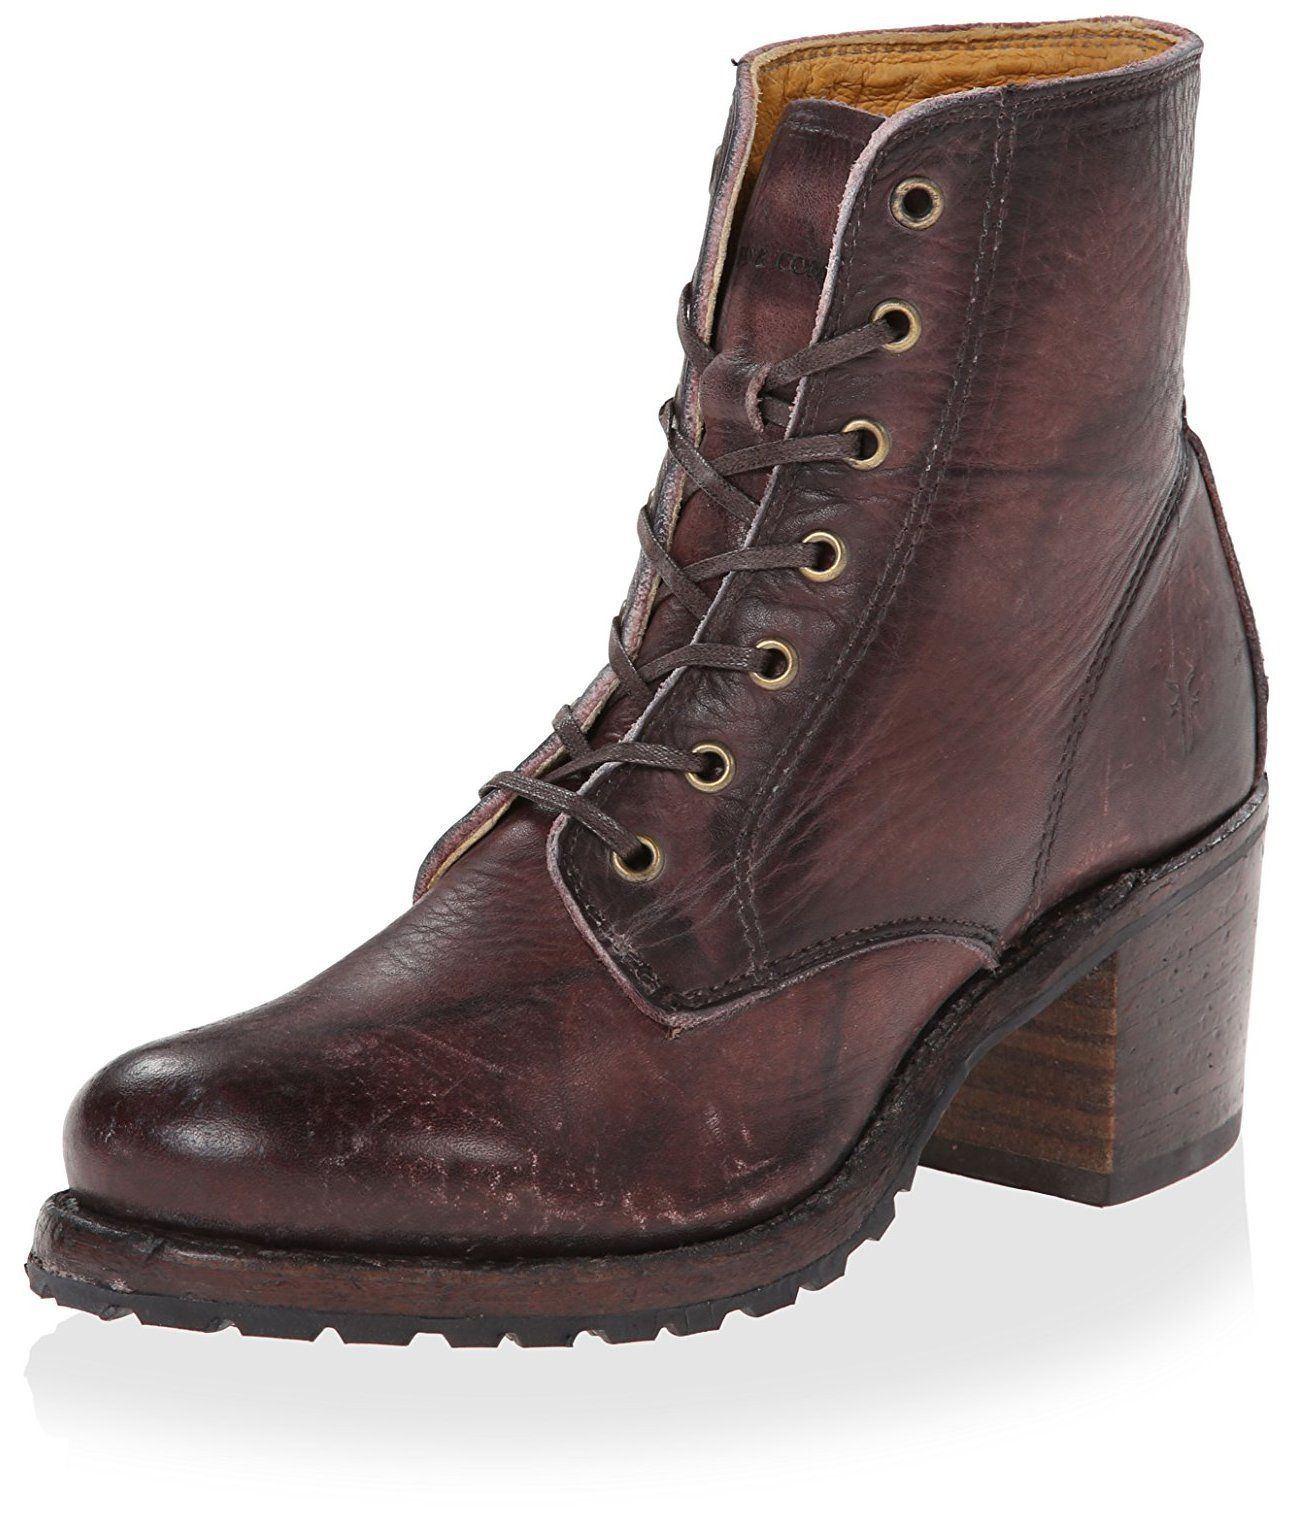 a54e96b7410 Frye Women's Sabrina 6G Lace Up Ankle Boot, Walnut, 7.5 M US. Dyed ...